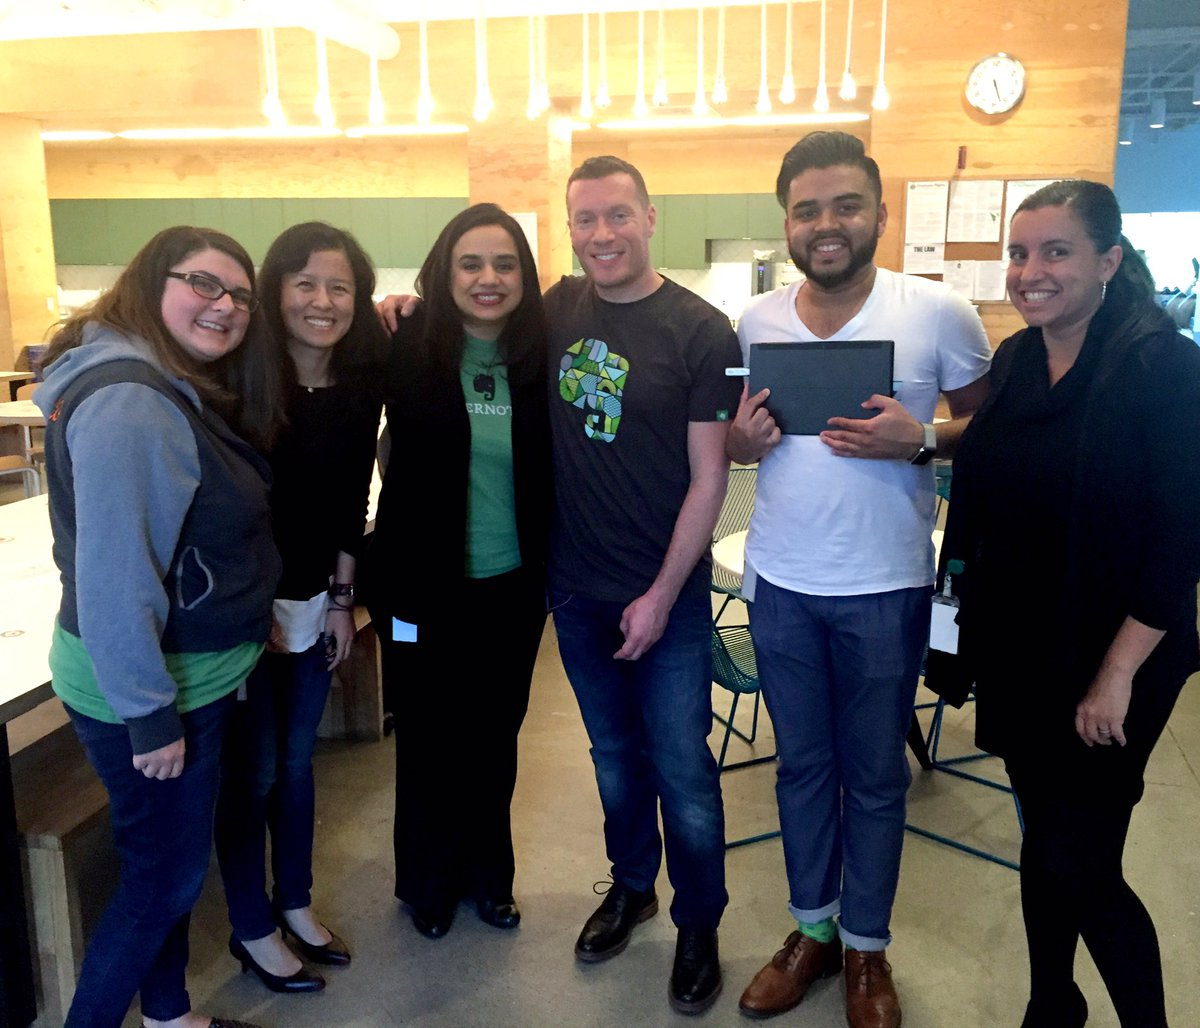 Go team EN! RT @gretelperera: With the @evernote team getting ready for Small Business event at #Evernote HQ https://t.co/9Lcc3XFP8U